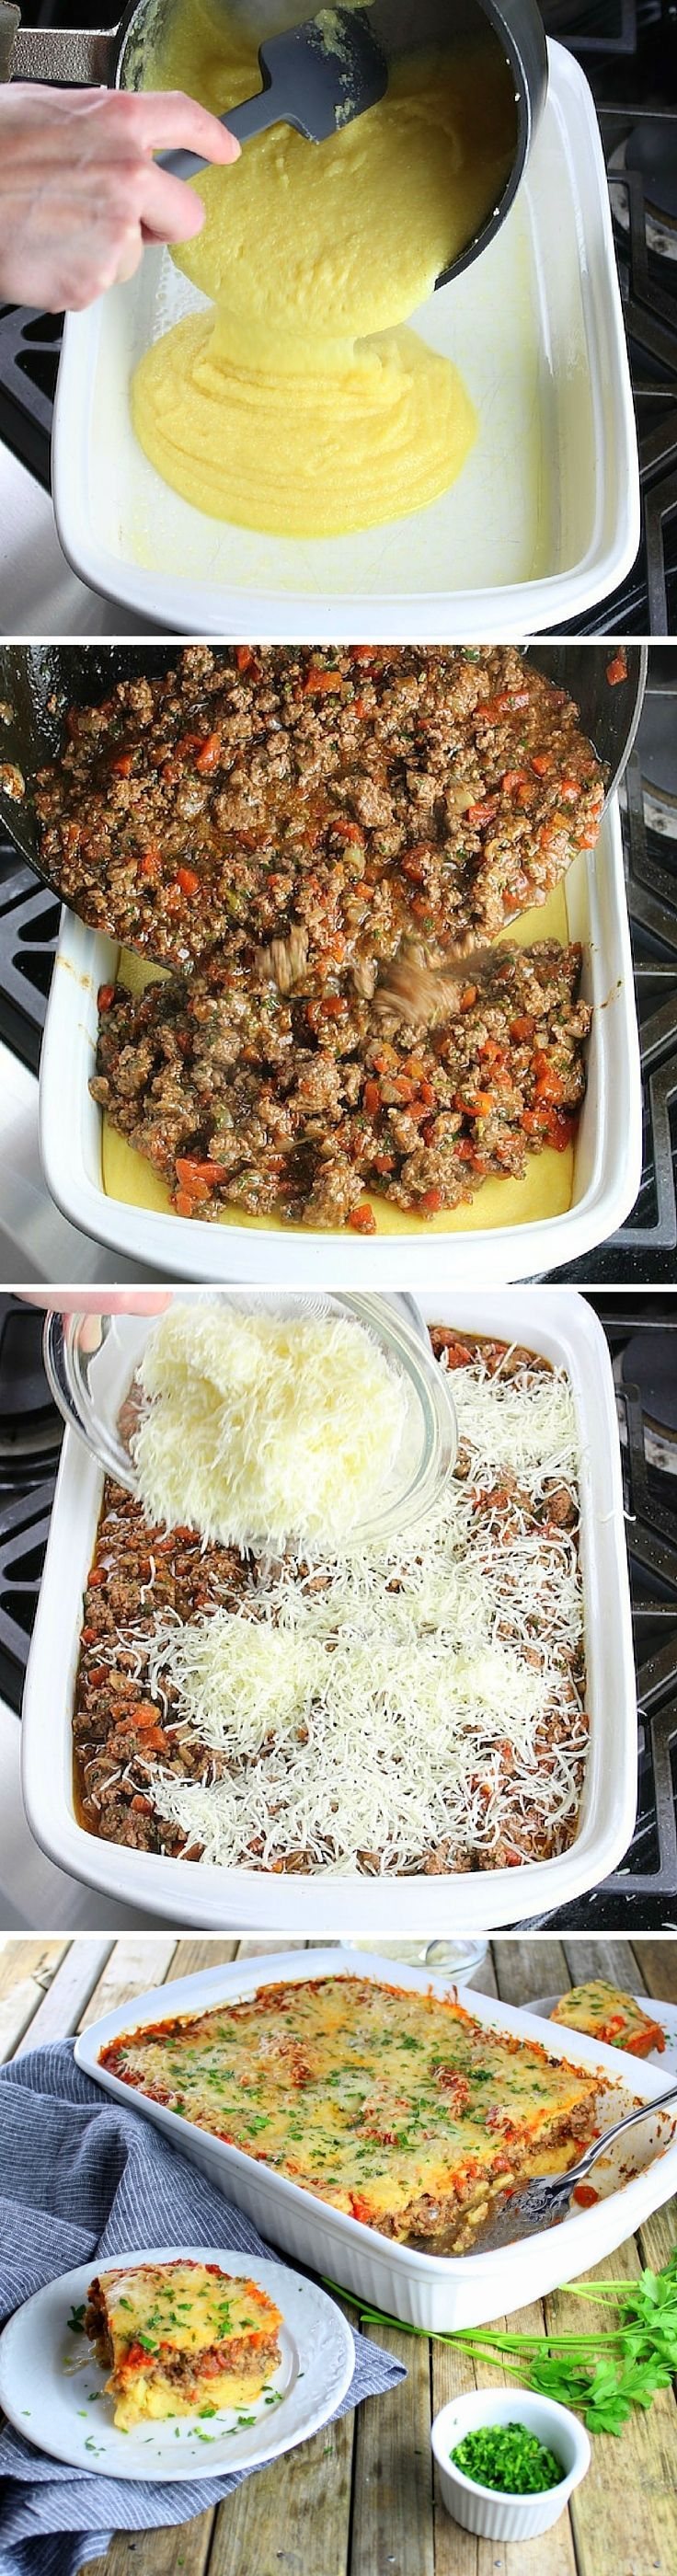 Lamb Lasagna With Parmesan Polenta.  Ground lamb, tomatoes, garlic, & onion... Polenta replaces the lasagna noodles, making it easy, gluten-free, & delicious!  http://tasteandsee.com